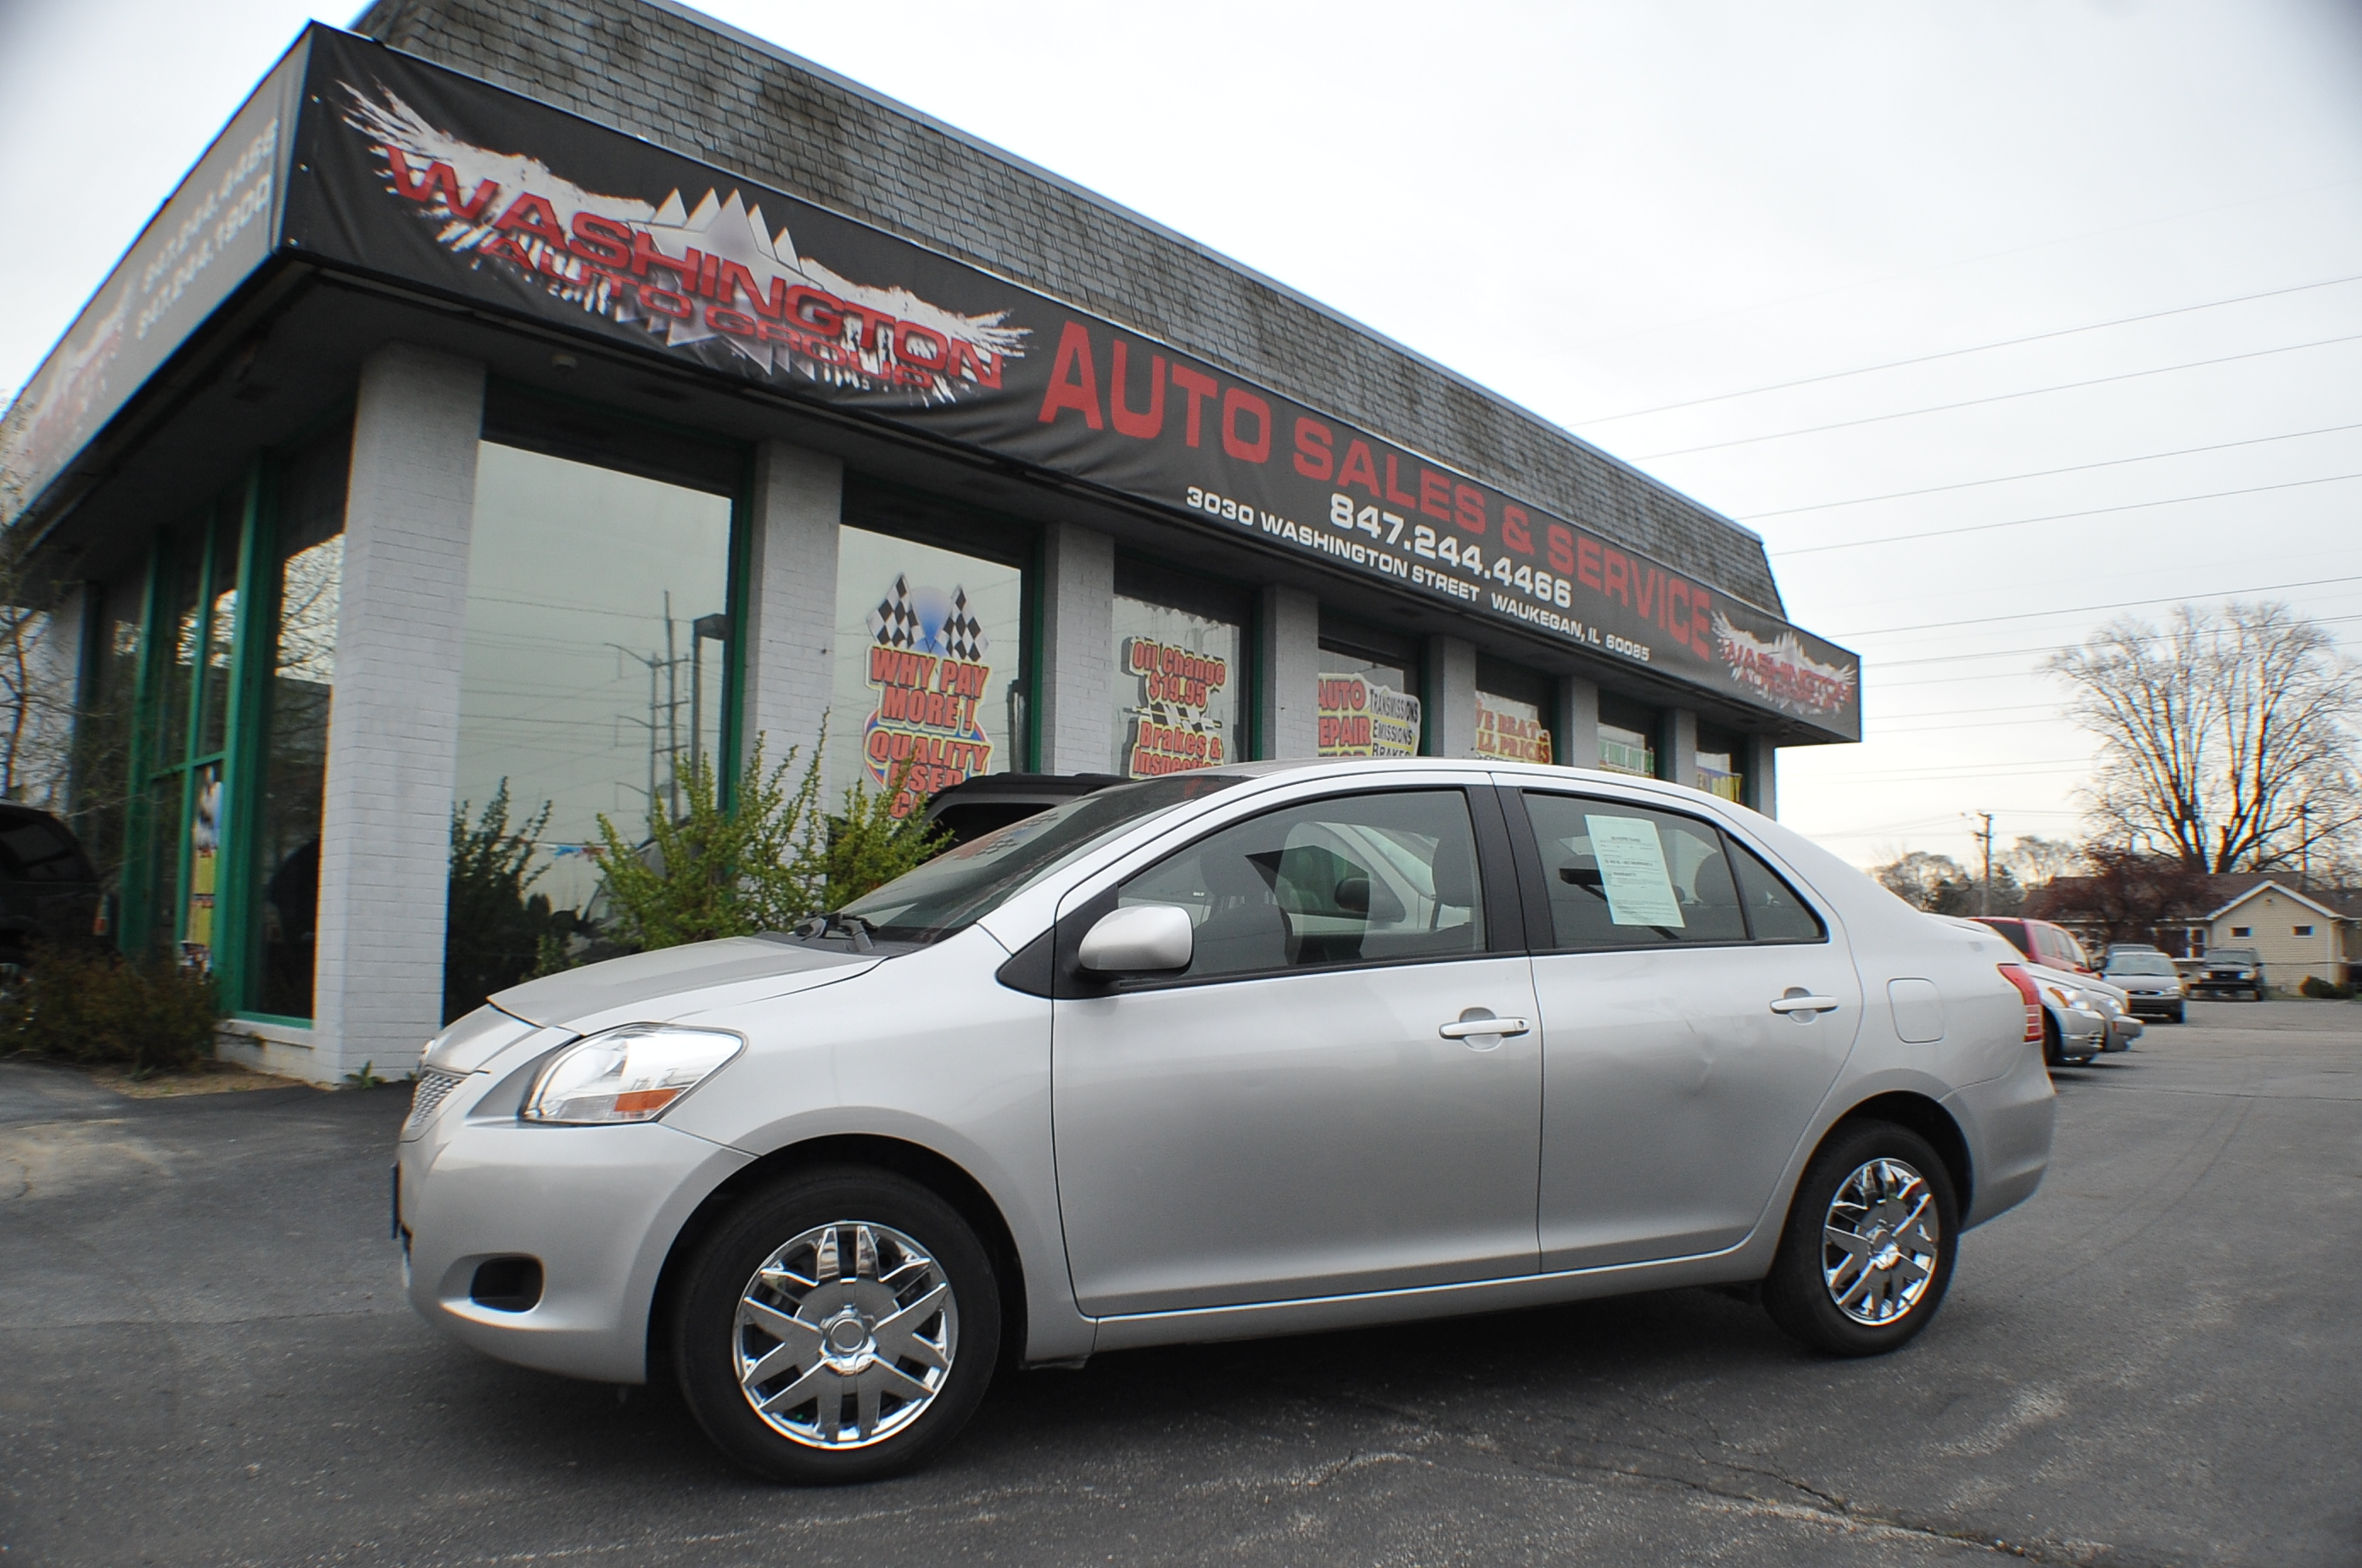 2012 Toyota Yaris used sedan car sale Antioch Zion Waukegan